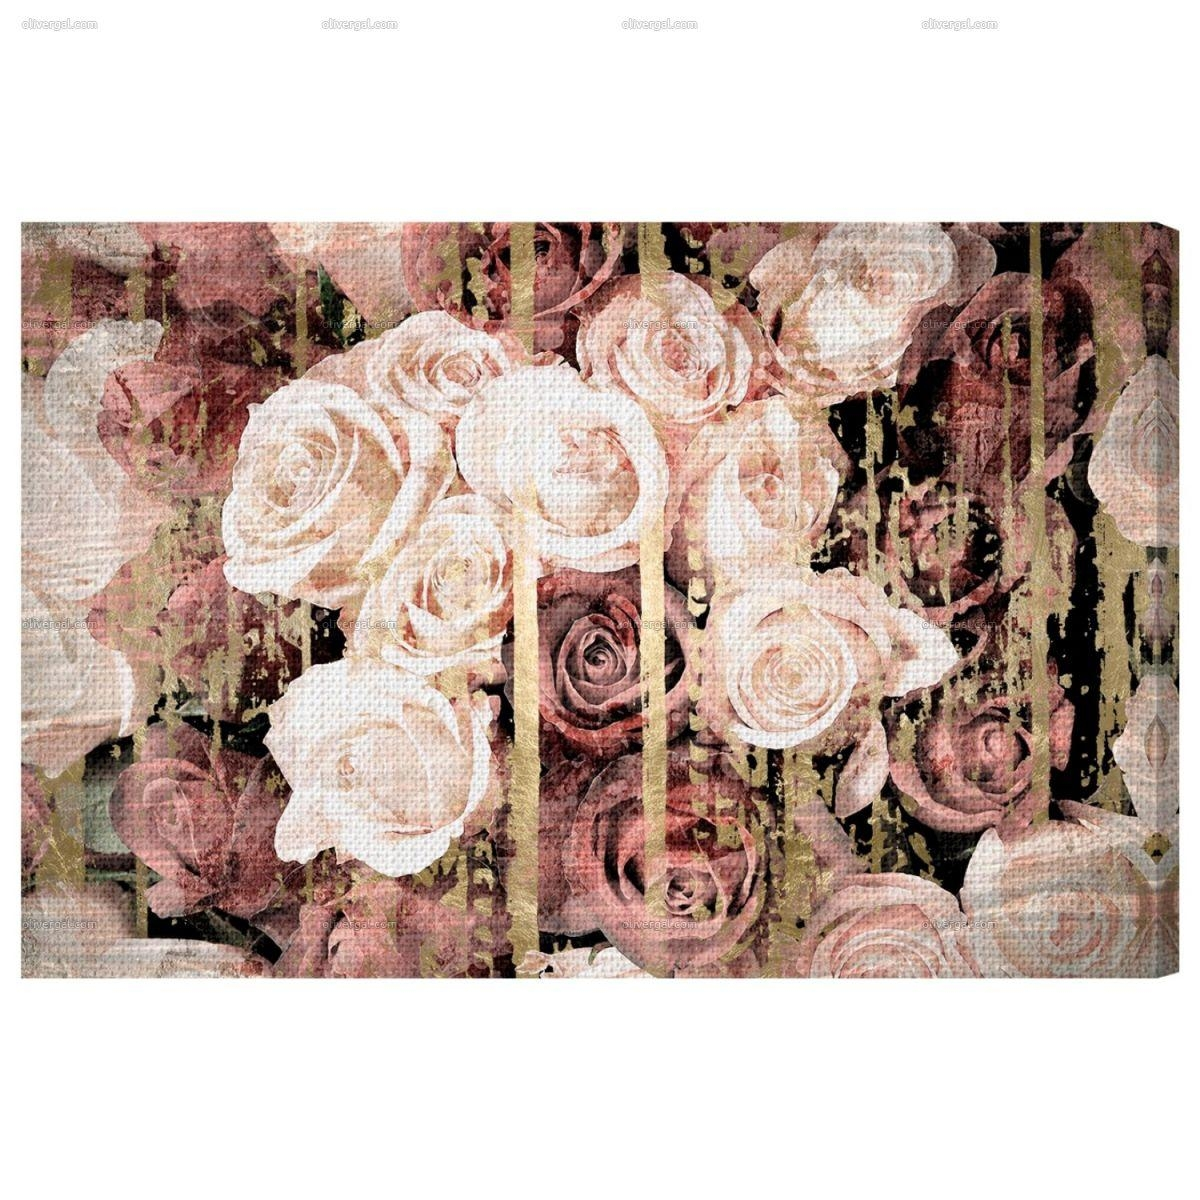 Shabby Chic Romance — Oliver Gal Intended For Shabby Chic Canvas Wall Art (Image 13 of 20)